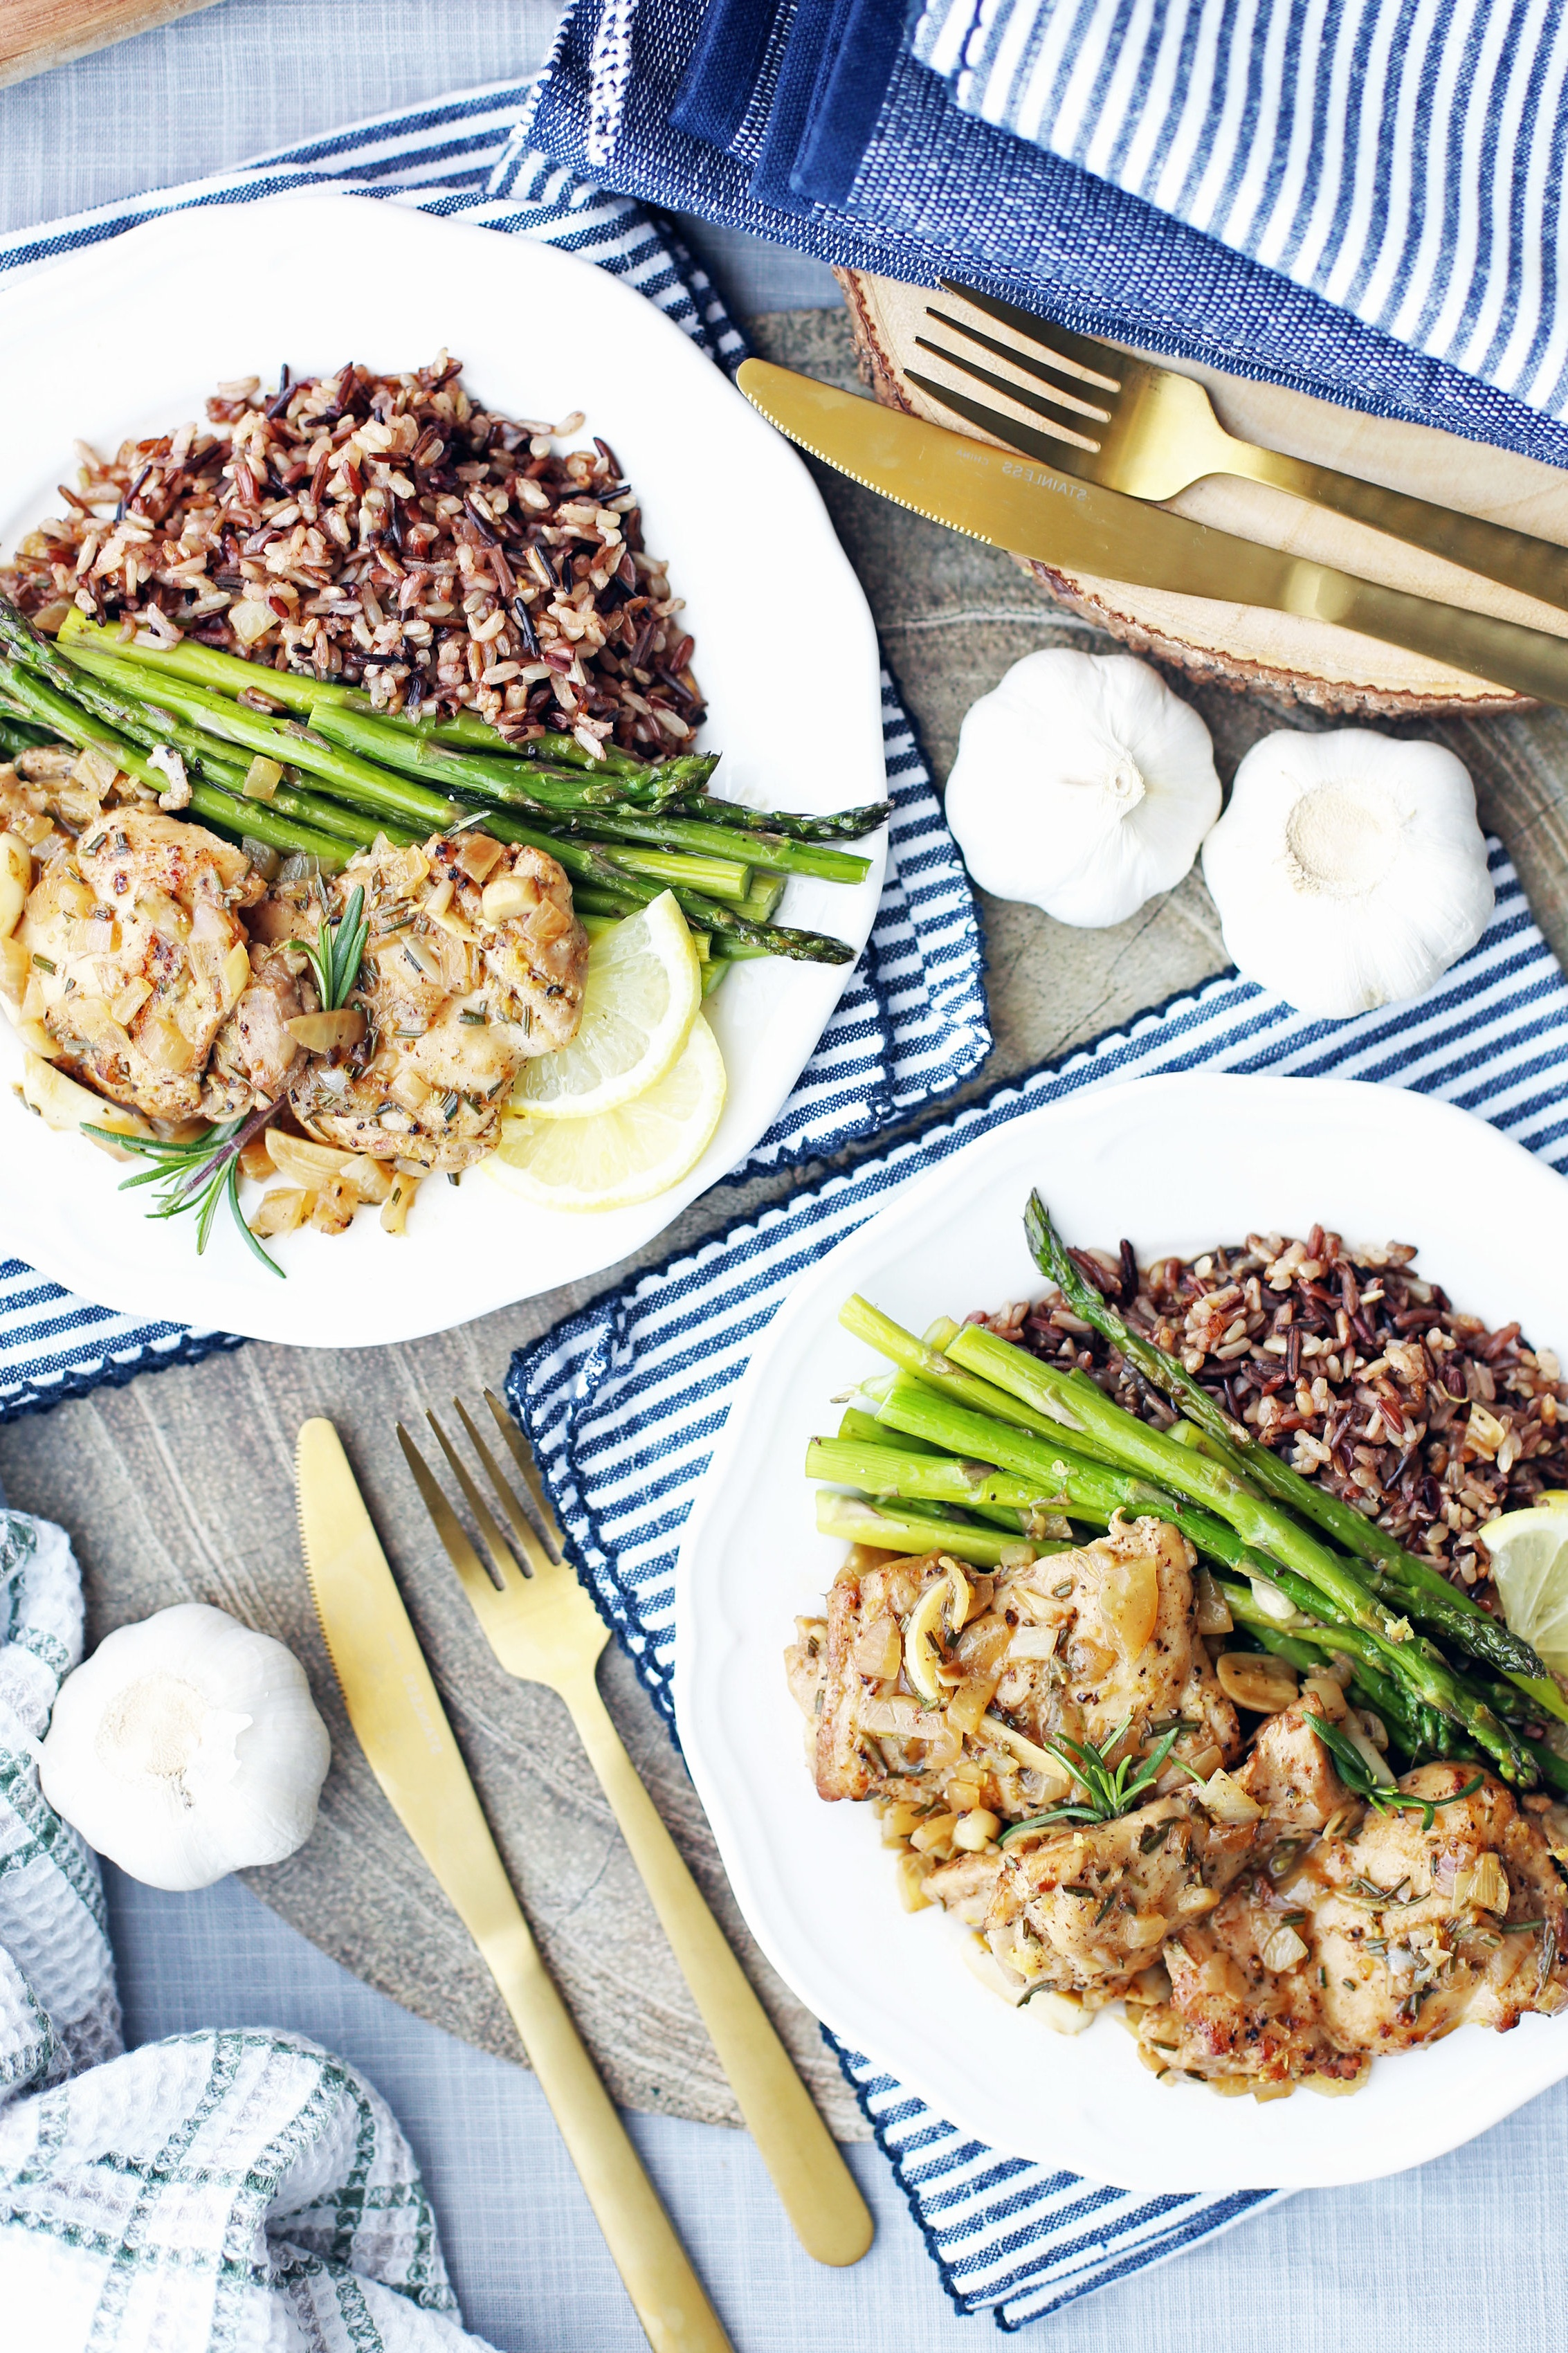 Overhead view of two white plates containing rosemary garlic chicken thighs, roasted asparagus, and wild rice.